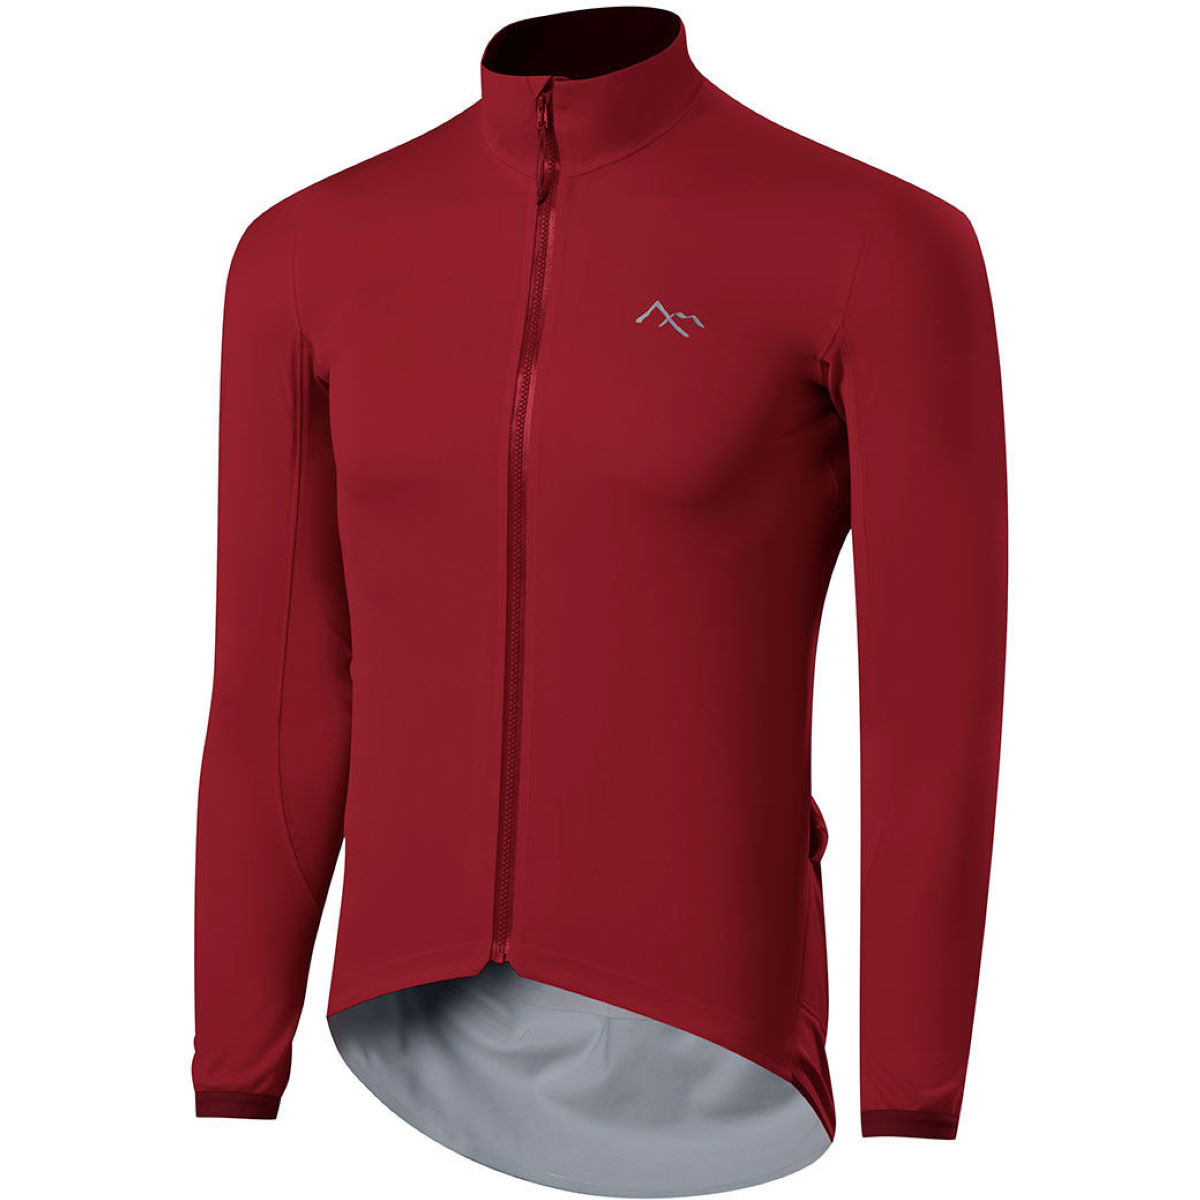 Maillot 7Mesh Corsa Windstopper Softshell - XL Carmine Red  Vestes